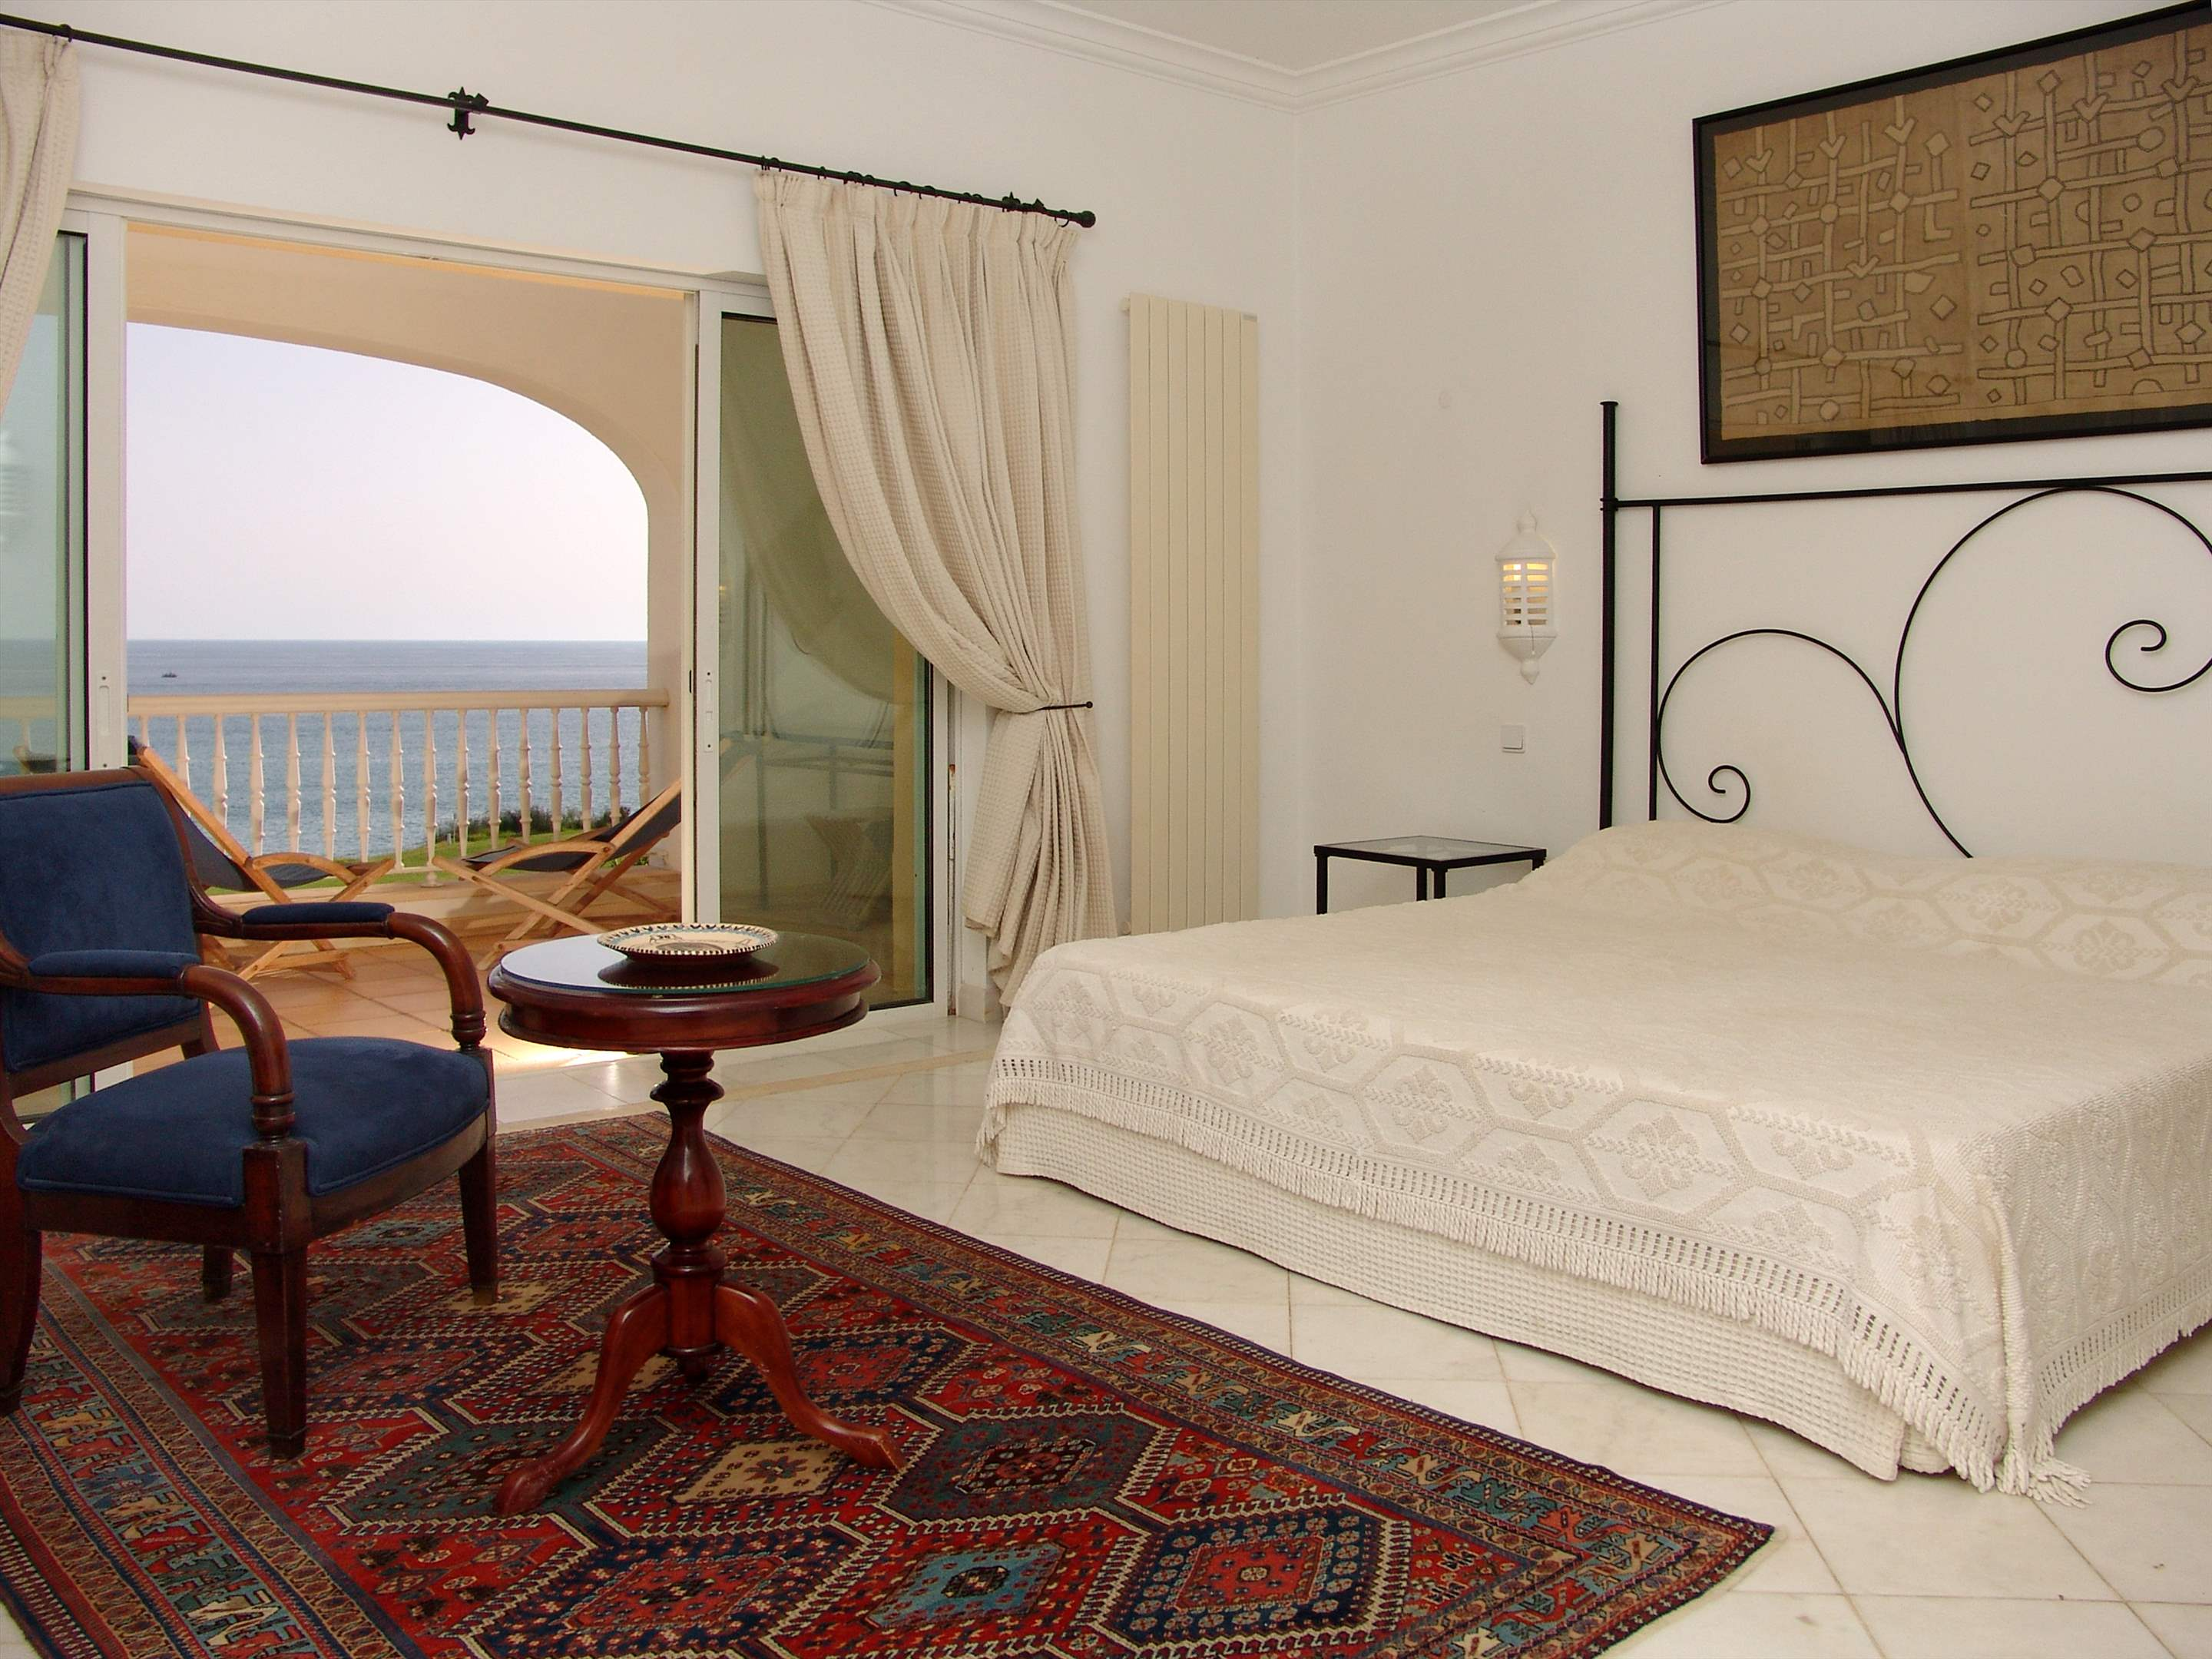 Villas Louisa, 5 bedroom, 5 bedroom villa in Vale do Lobo, Algarve Photo #15